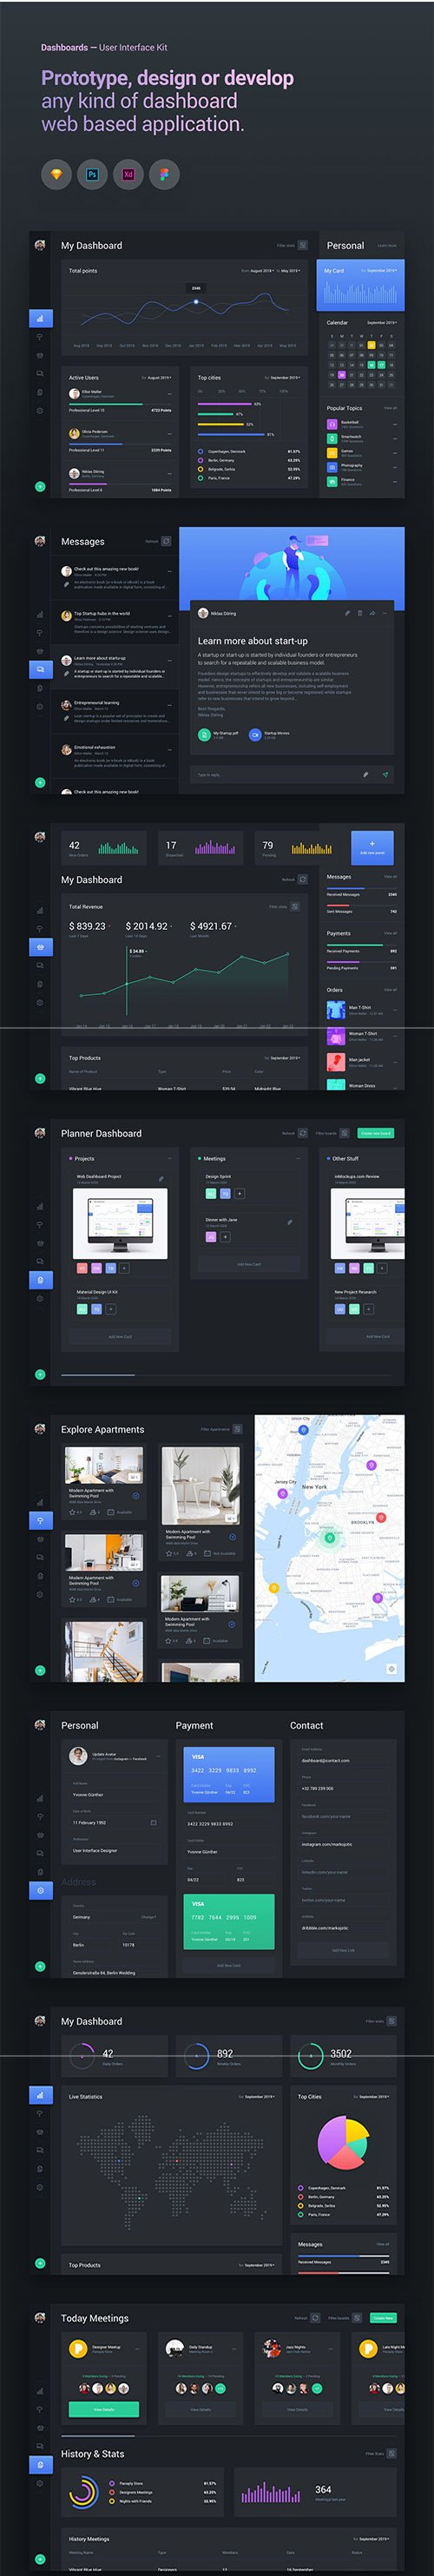 Web Dashboard & Statistics UI Kit